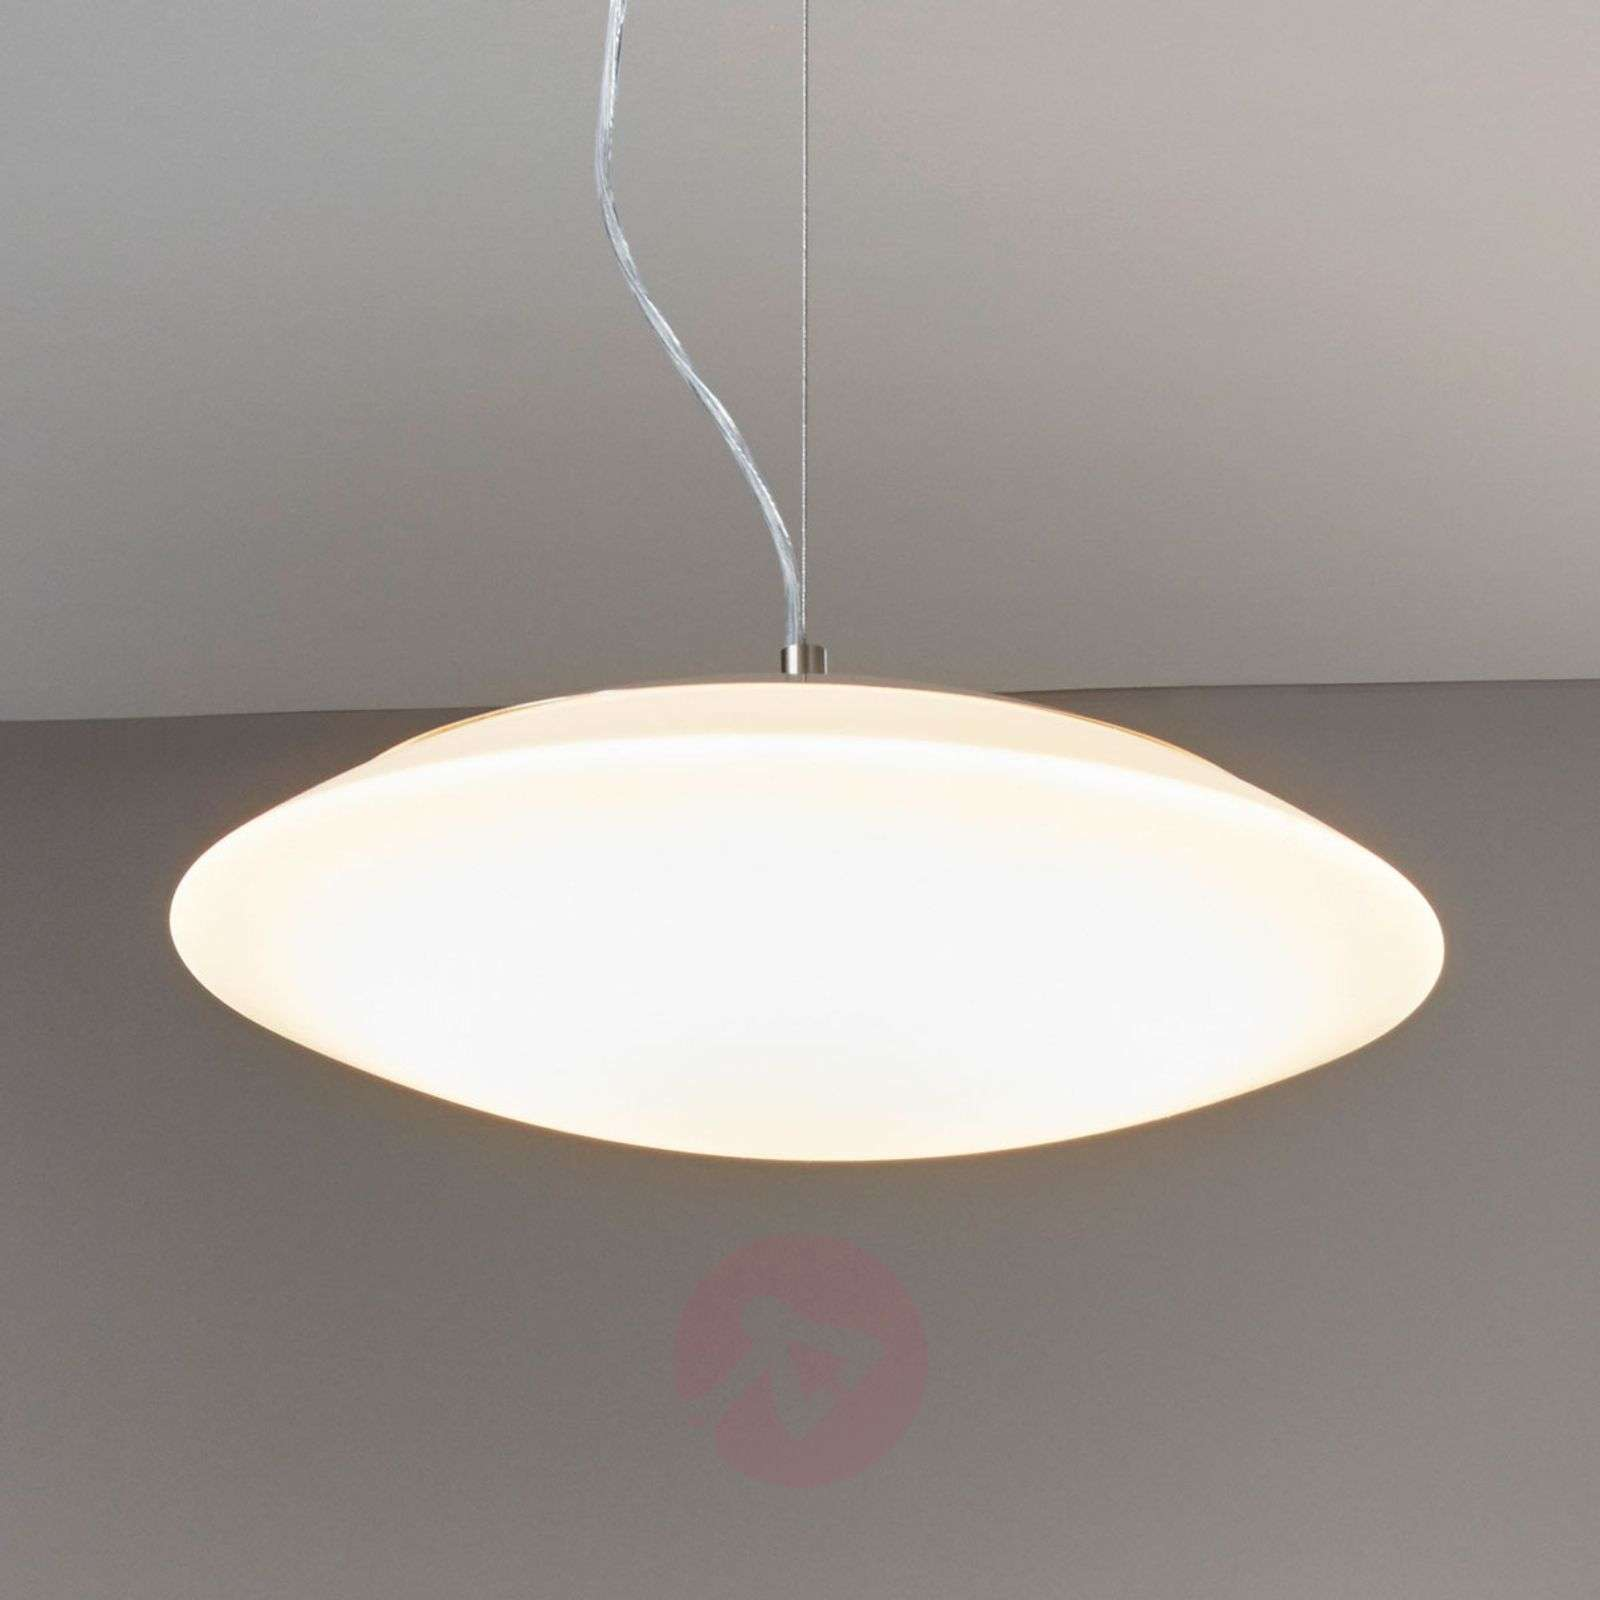 EGLO connect Frattina-C lámpara colgante LED-3032193-05